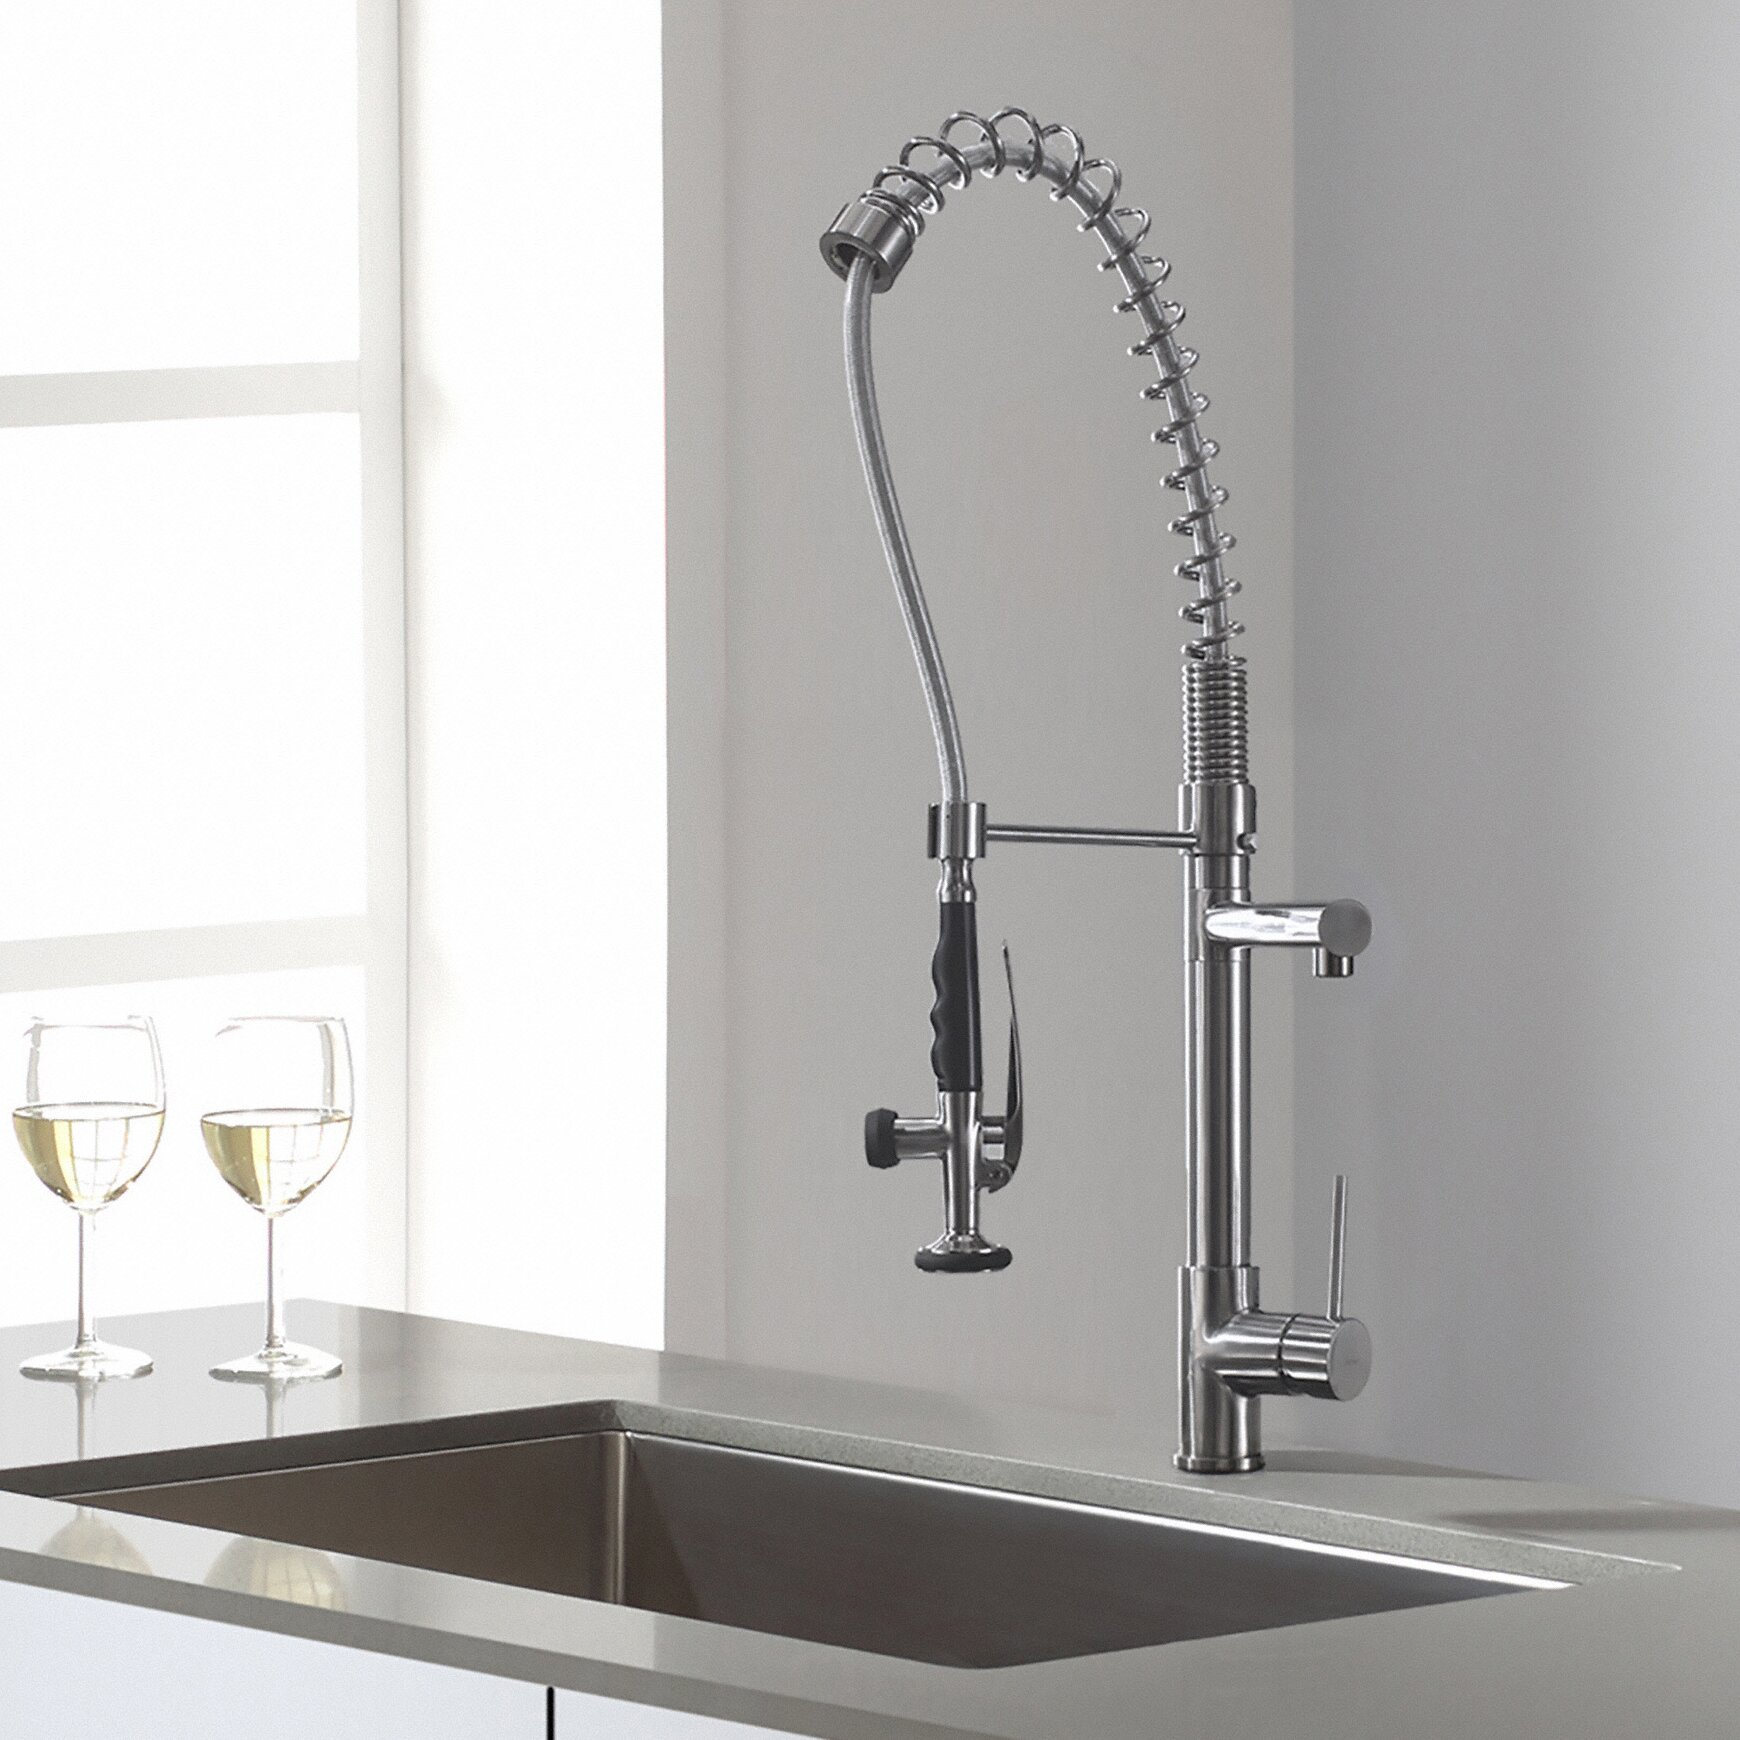 Most Reliable Kitchen Faucets Kraus Single Handle Pull Down Deck Mounted Kitchen Faucet